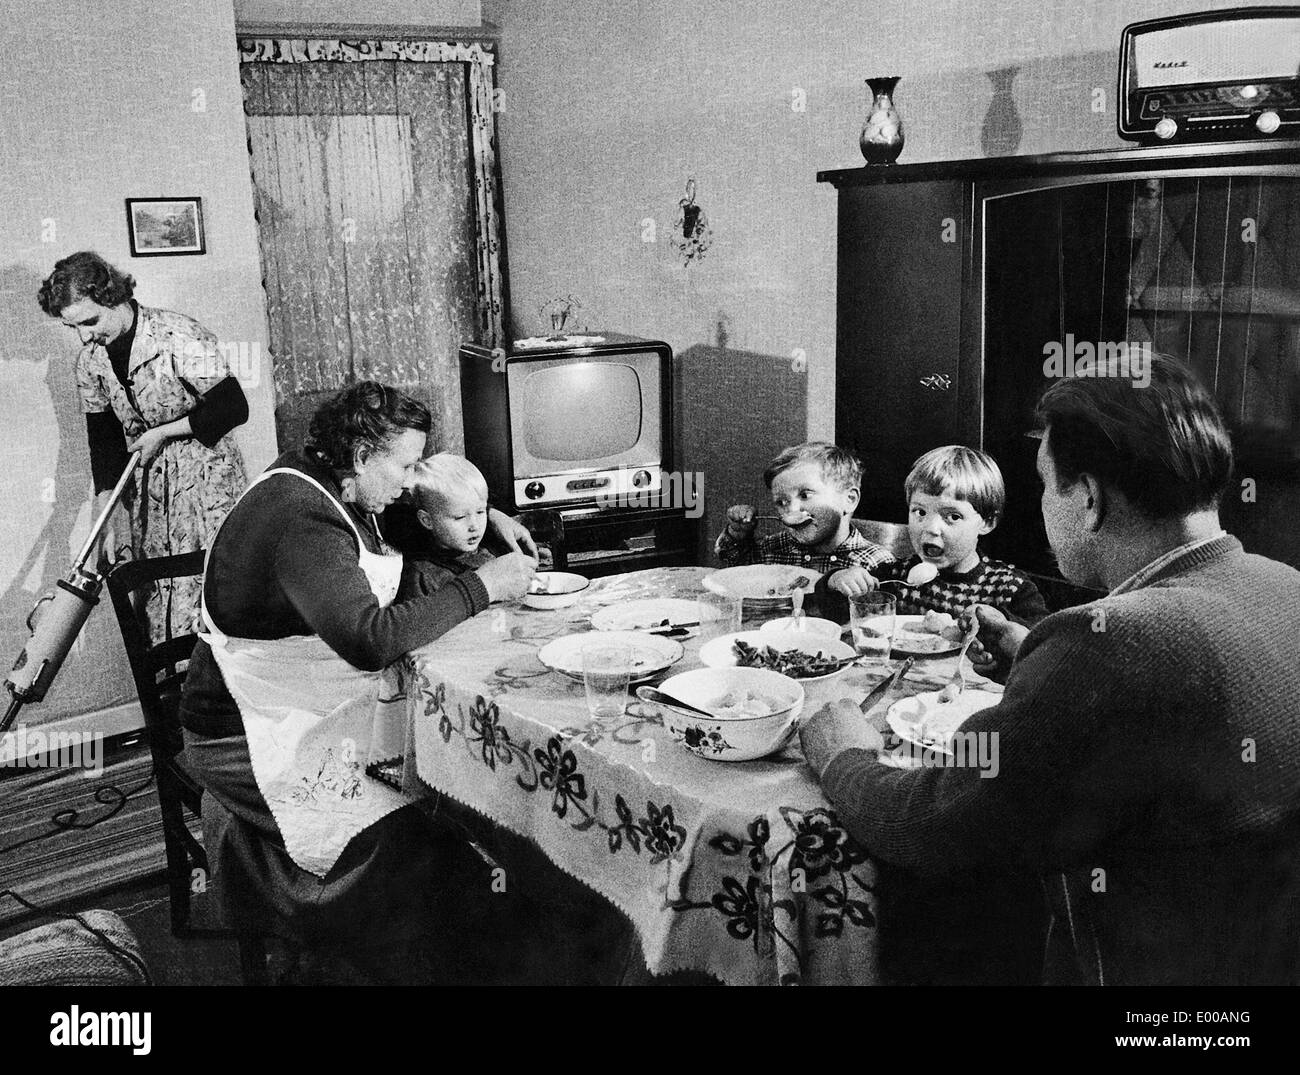 A family while eating, 1959 - Stock Image